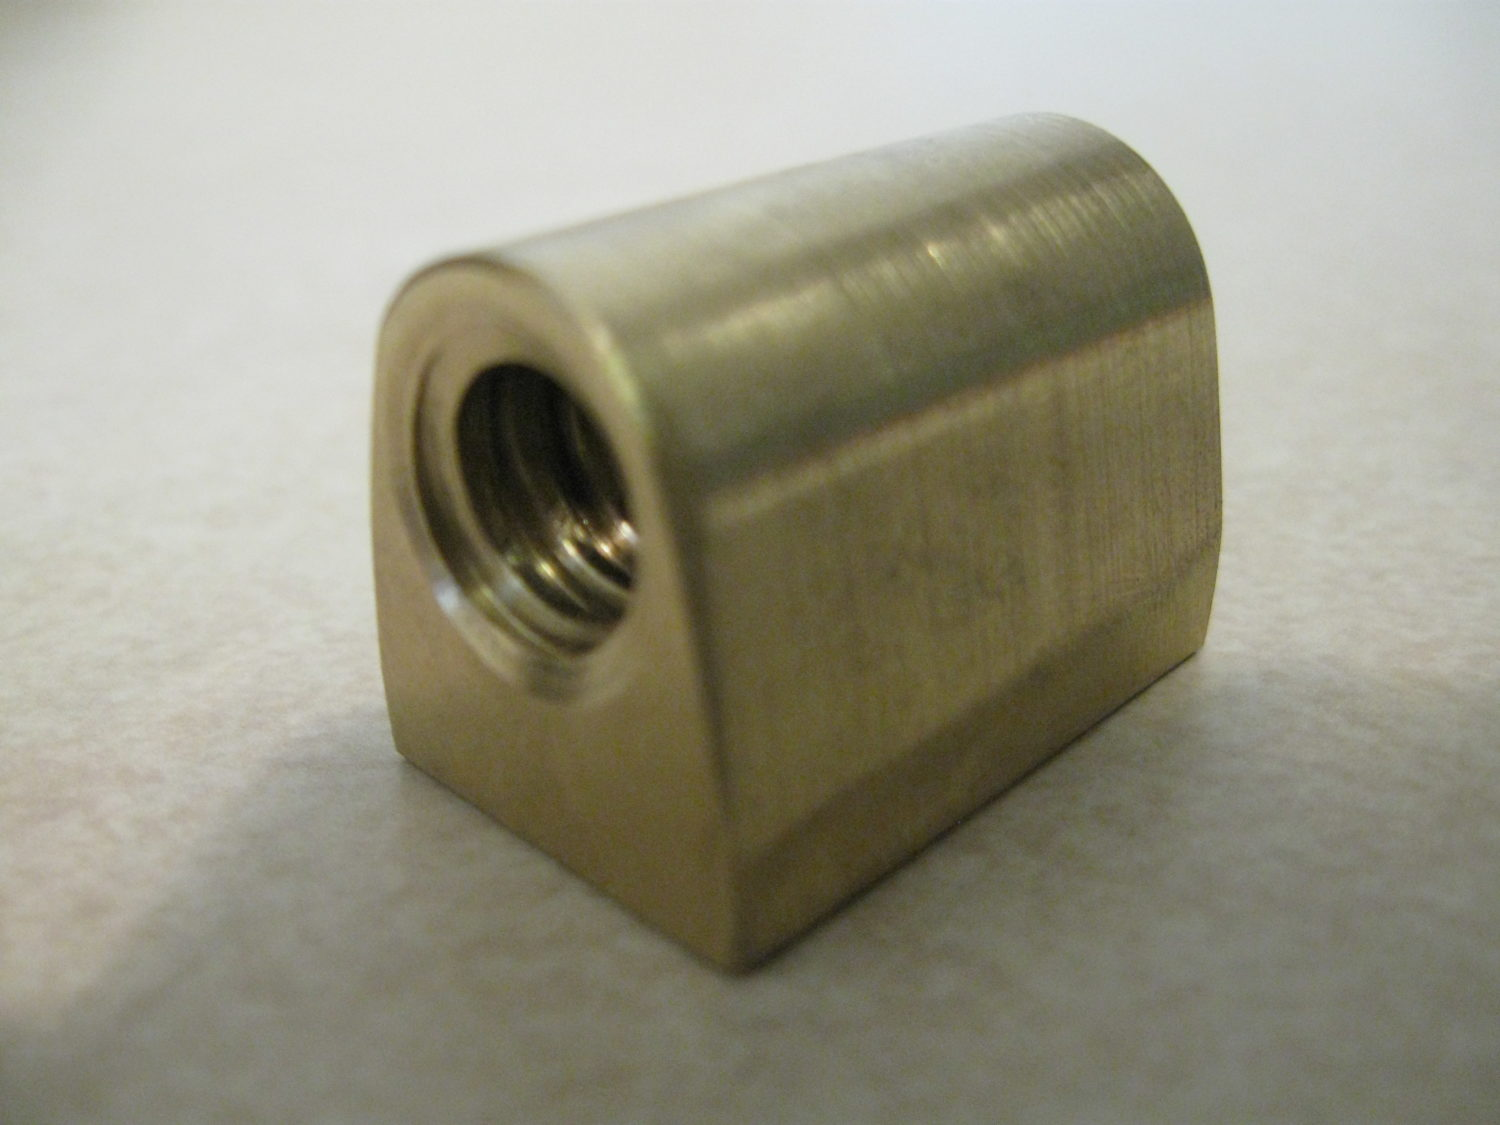 South Bend Lathe 9 /& Light10 with Taper Attachment Cross Slide Feed Nut PT486NK1